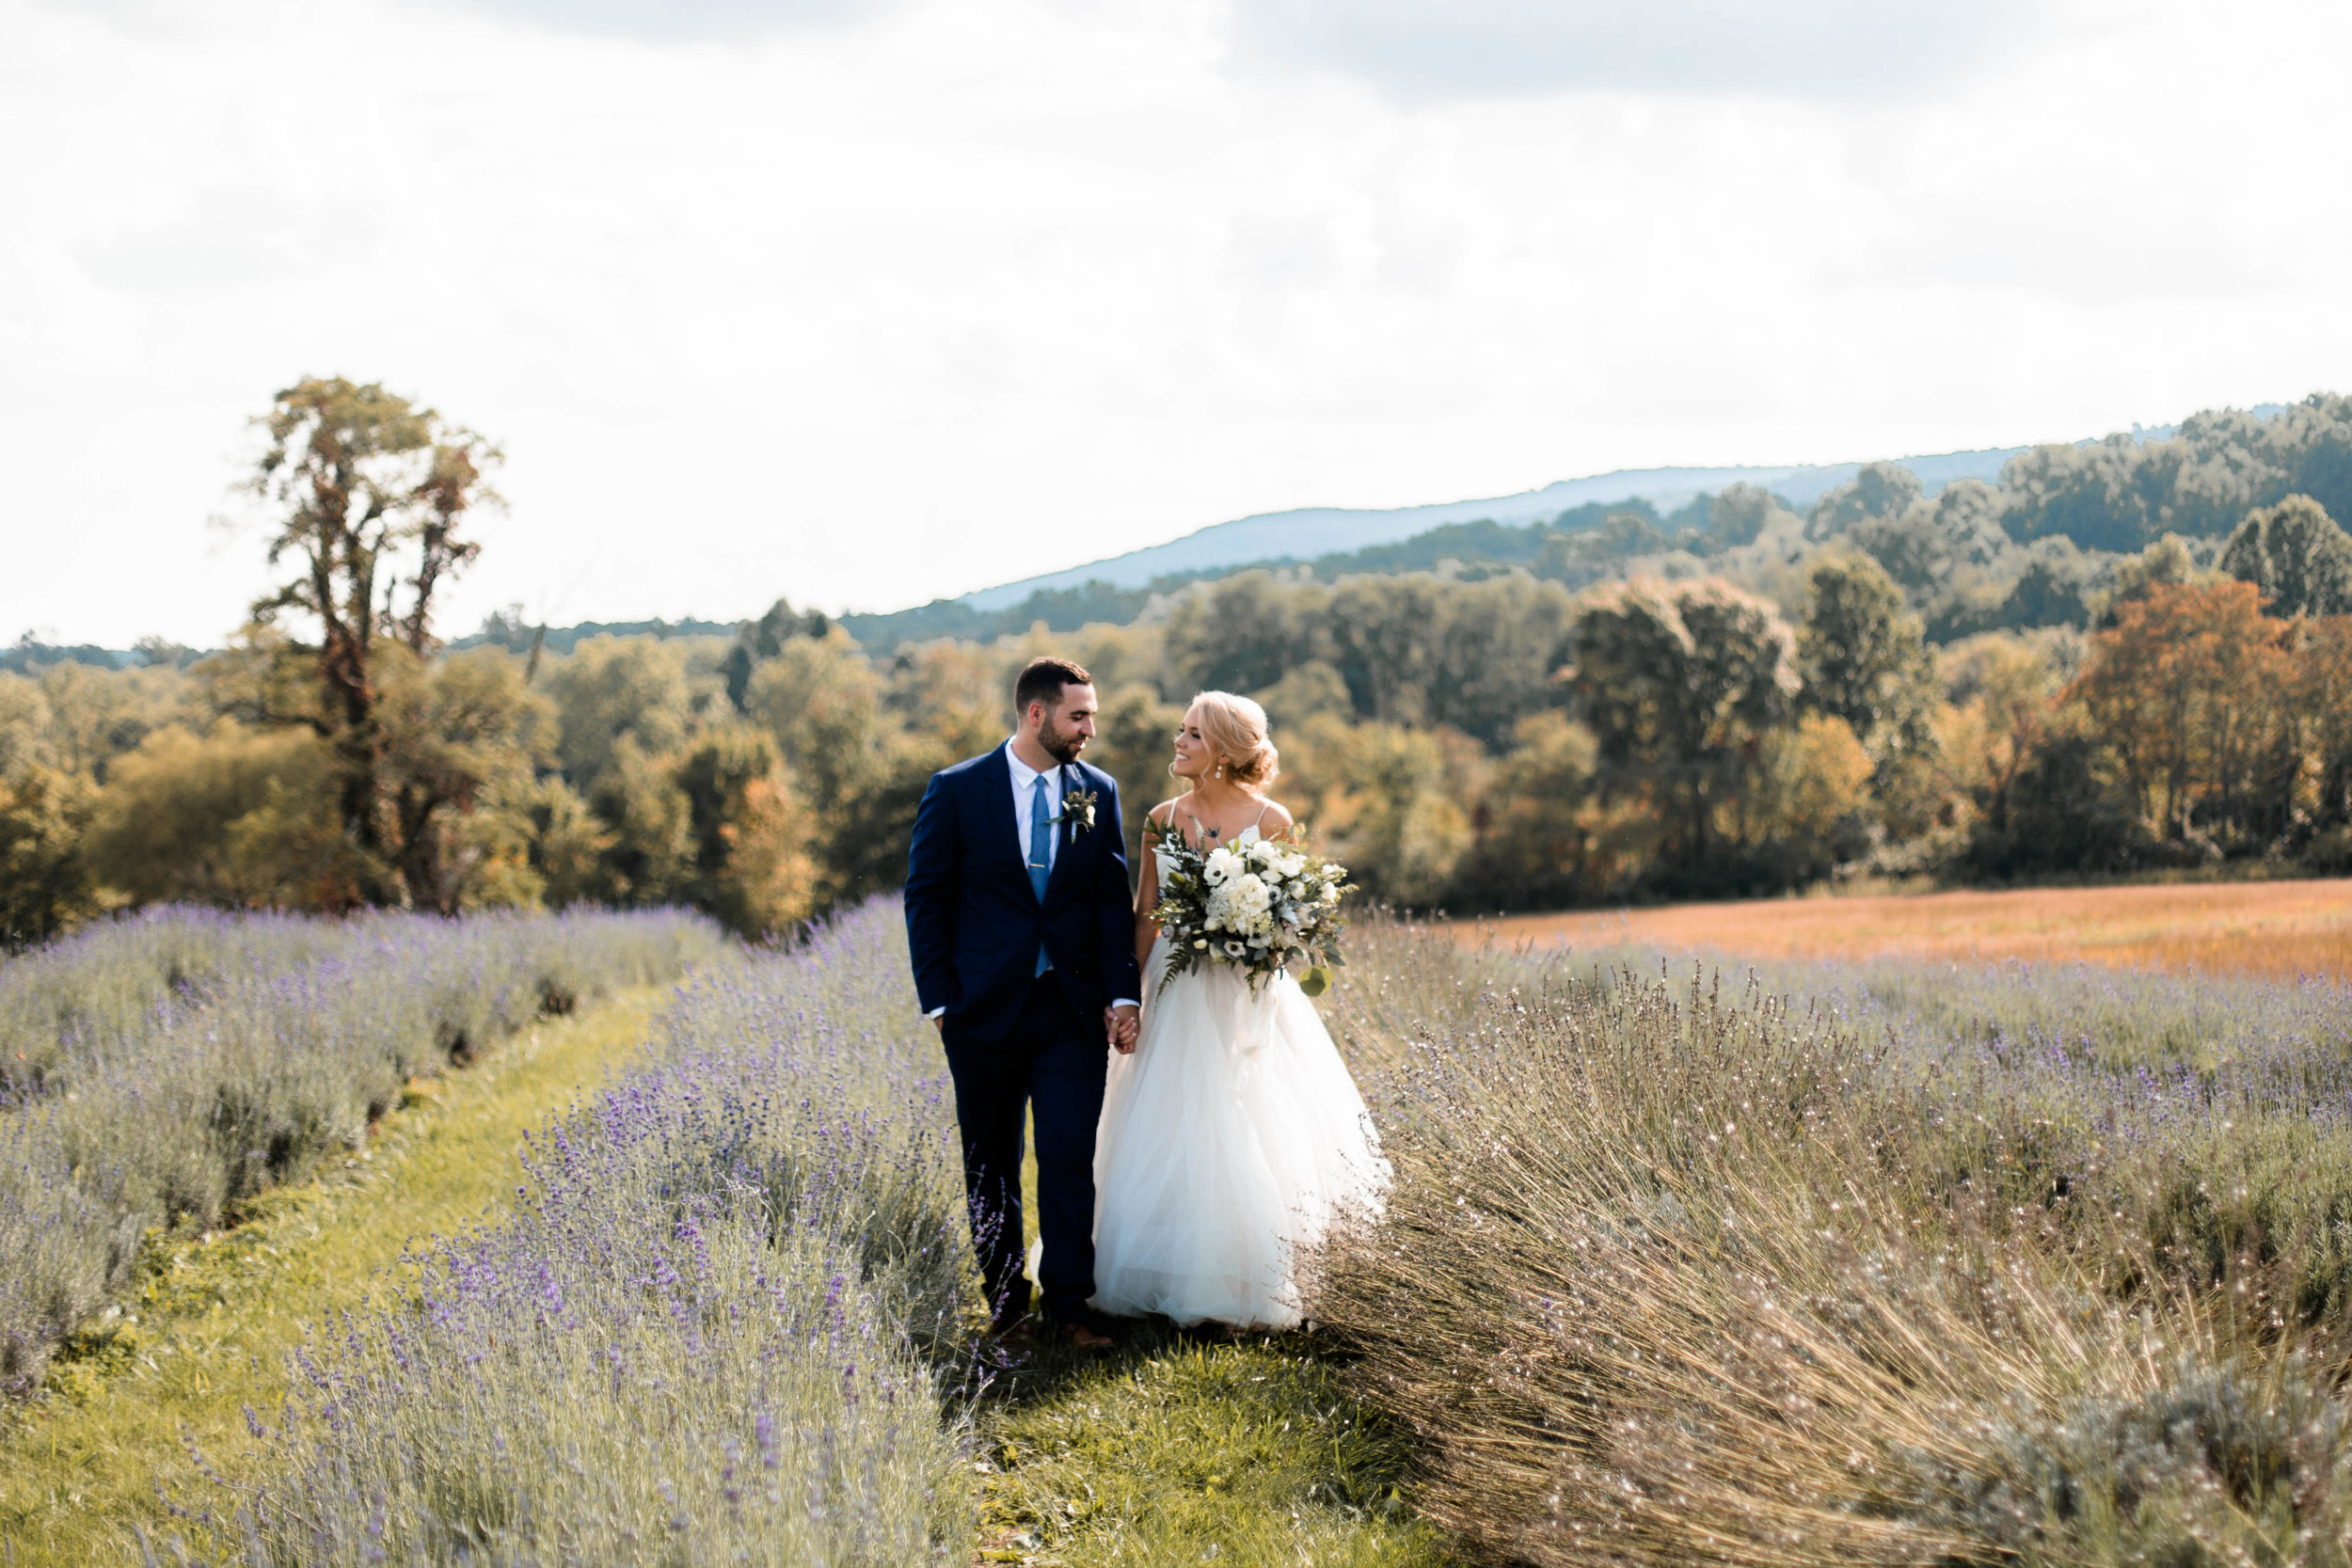 nicole-daacke-photography-intimate-wedding-in-a-lavender-field-washington-state-wedding-photographer-intimate-elopement-golden-lavender-field-wedding-photos-33.jpg